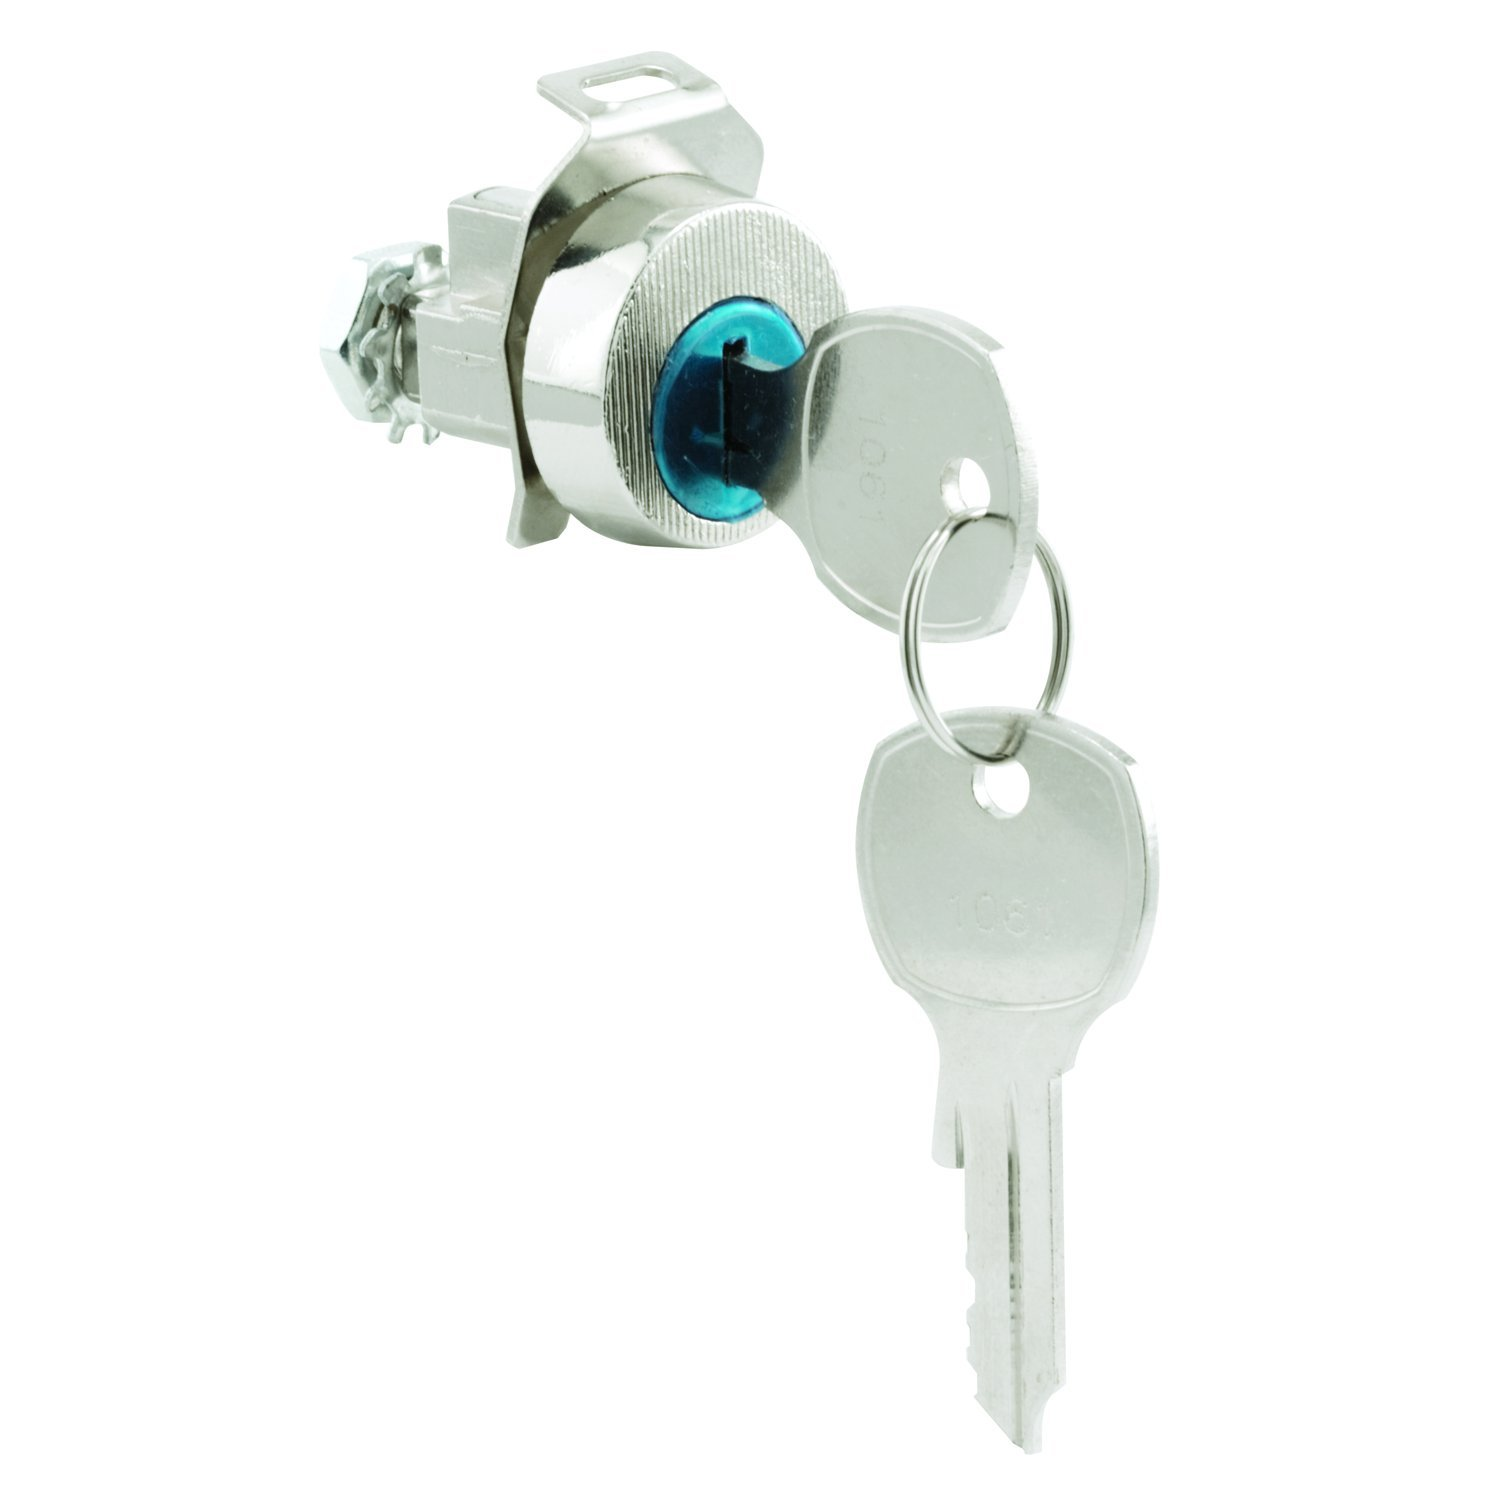 Prime-Line Products S 4710 Mail Box Lock with Dust Cover, fits Auth-Florence